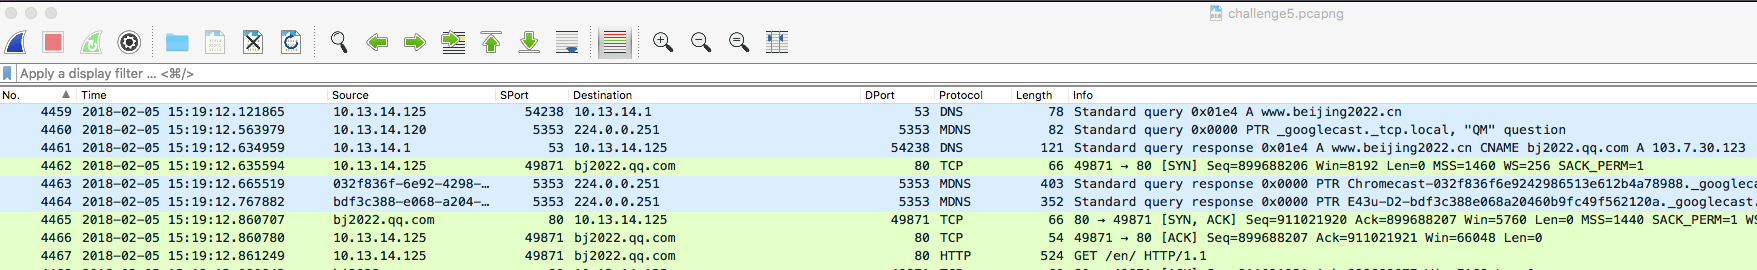 wireshark pcap analysis puzzle 5 Beijing 2022 traffic